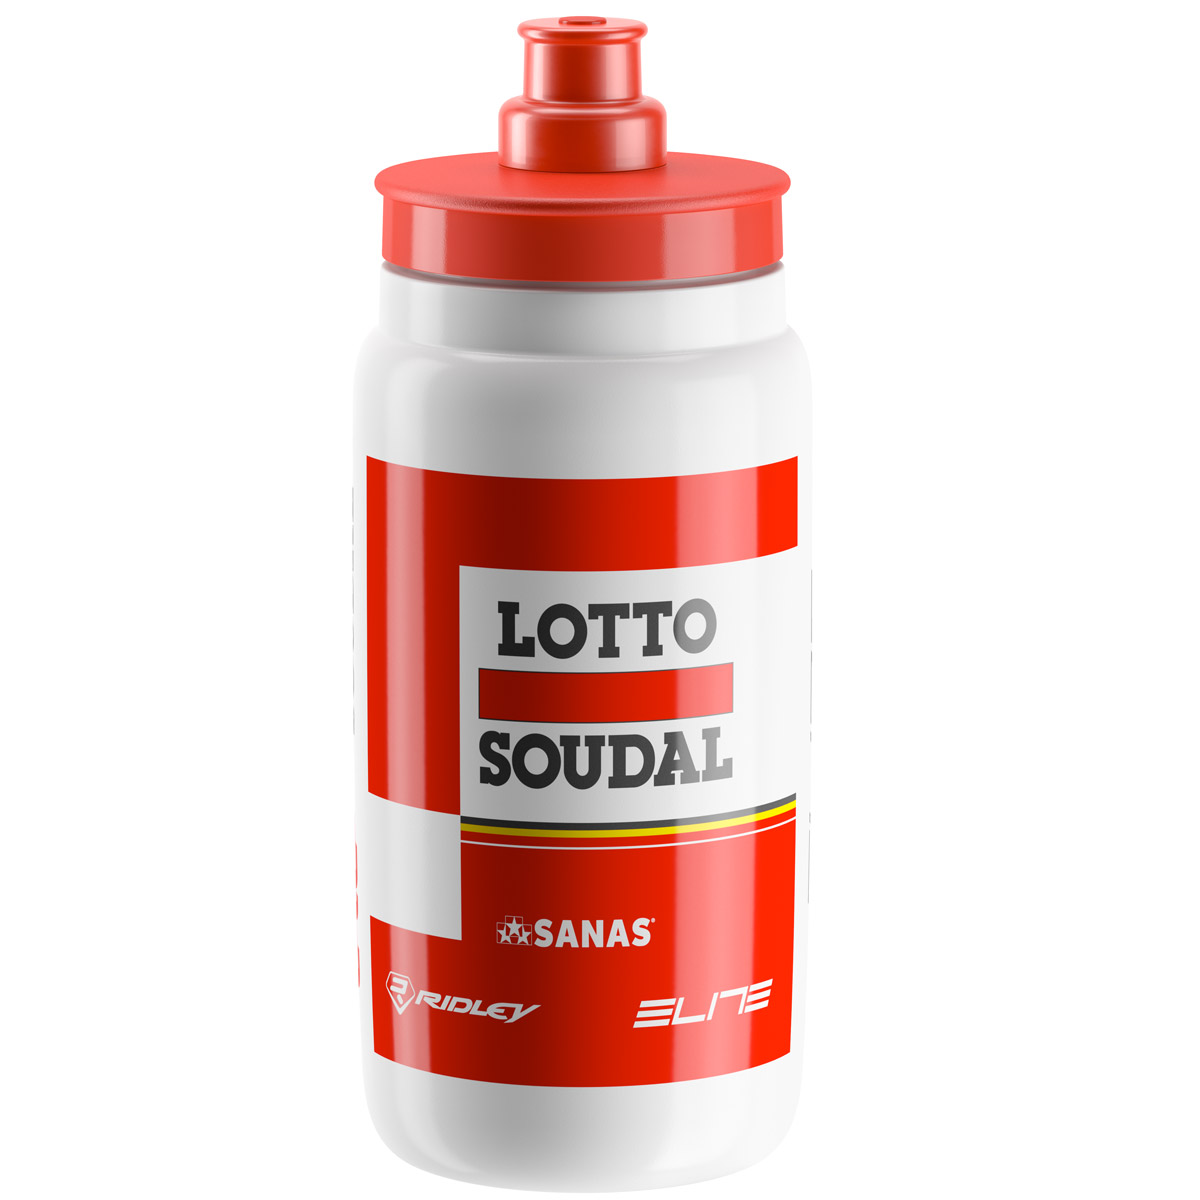 2017 Trinkflasche Elite Fly Lotto - Soudal